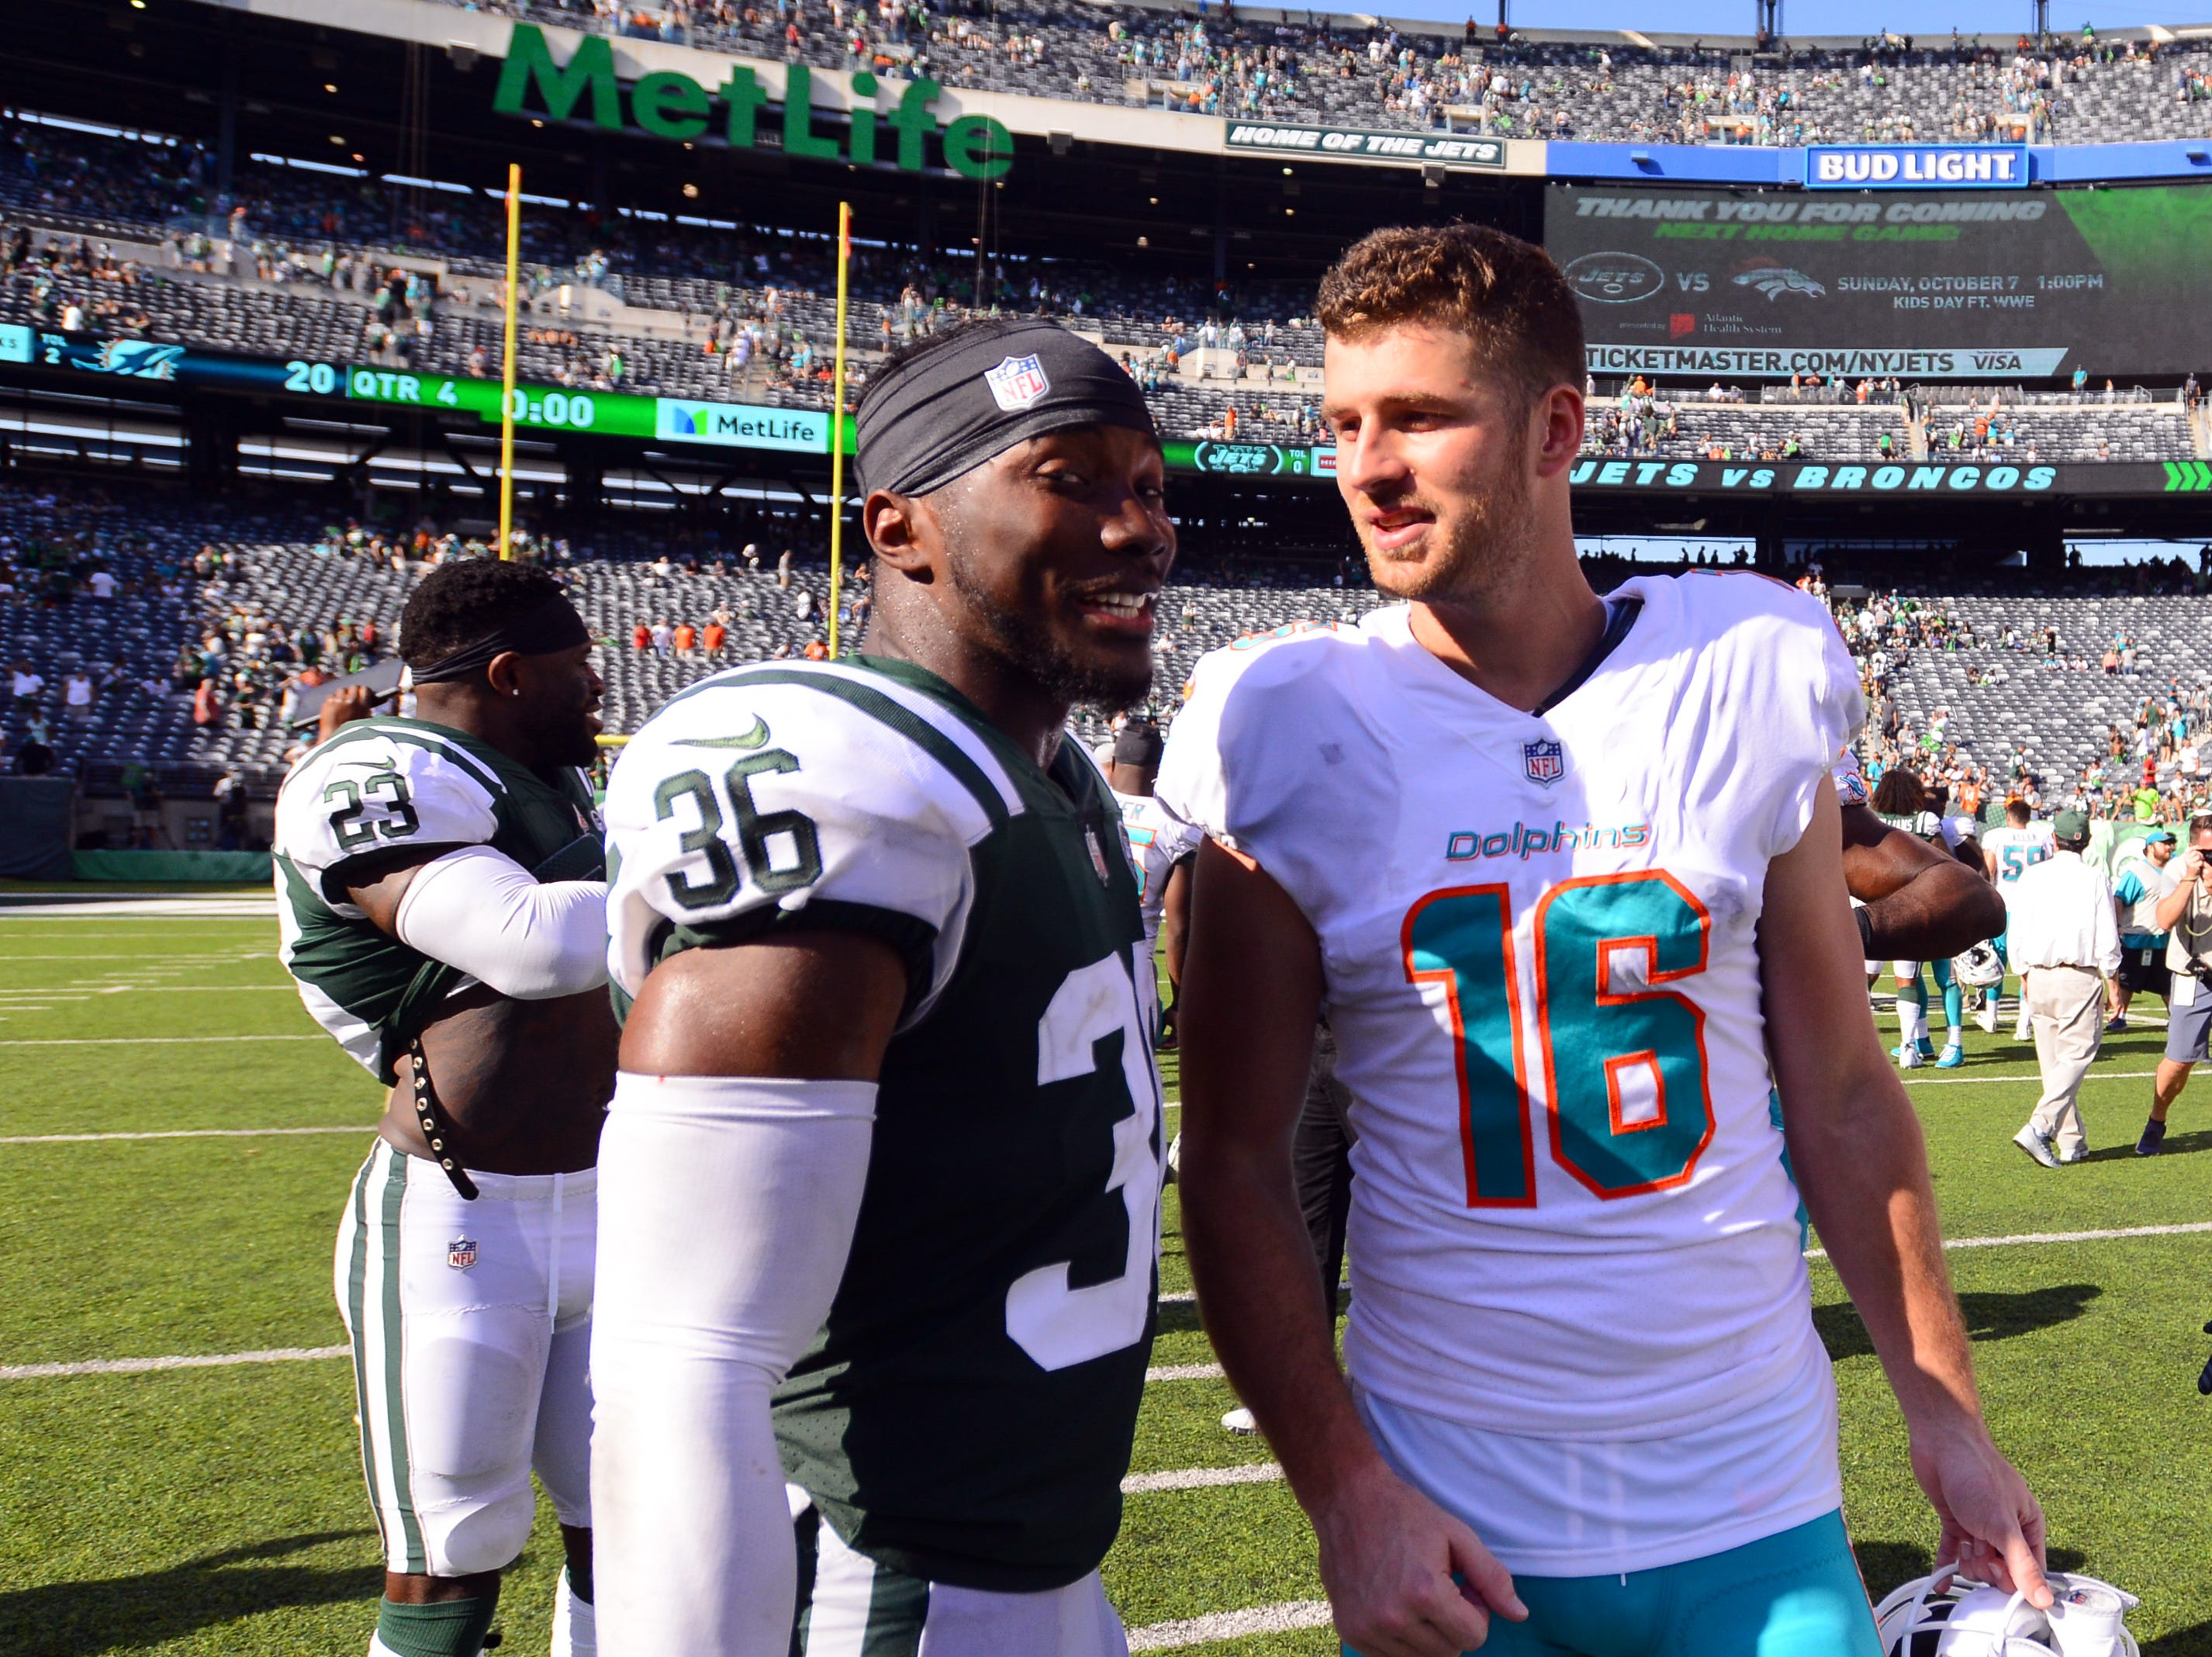 New York Jets safety Doug Middleton (36) and Miami Dolphins wide receiver Tanner McEvoy (16) talk after the Dolphins defeat the Jets, 20-12, in Week 2 at MetLife Stadium in East Rutherford, NJ on Sunday, September 16, 2018. McEvoy is a Hillsdale, NJ native.